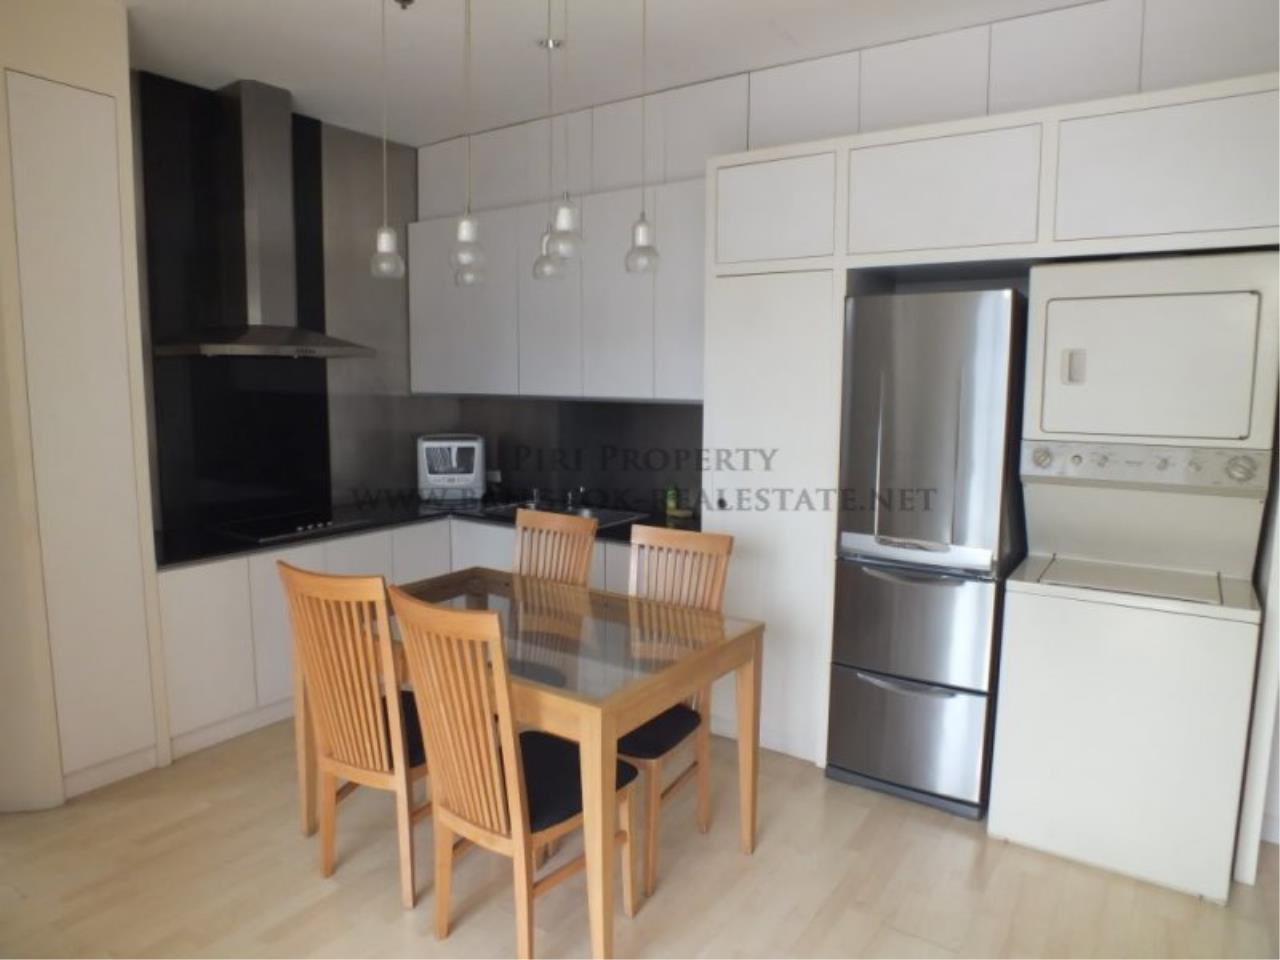 Piri Property Agency's AP Citismart for Rent - Nice 2 Bedroom right next to the BTS Asoke 1